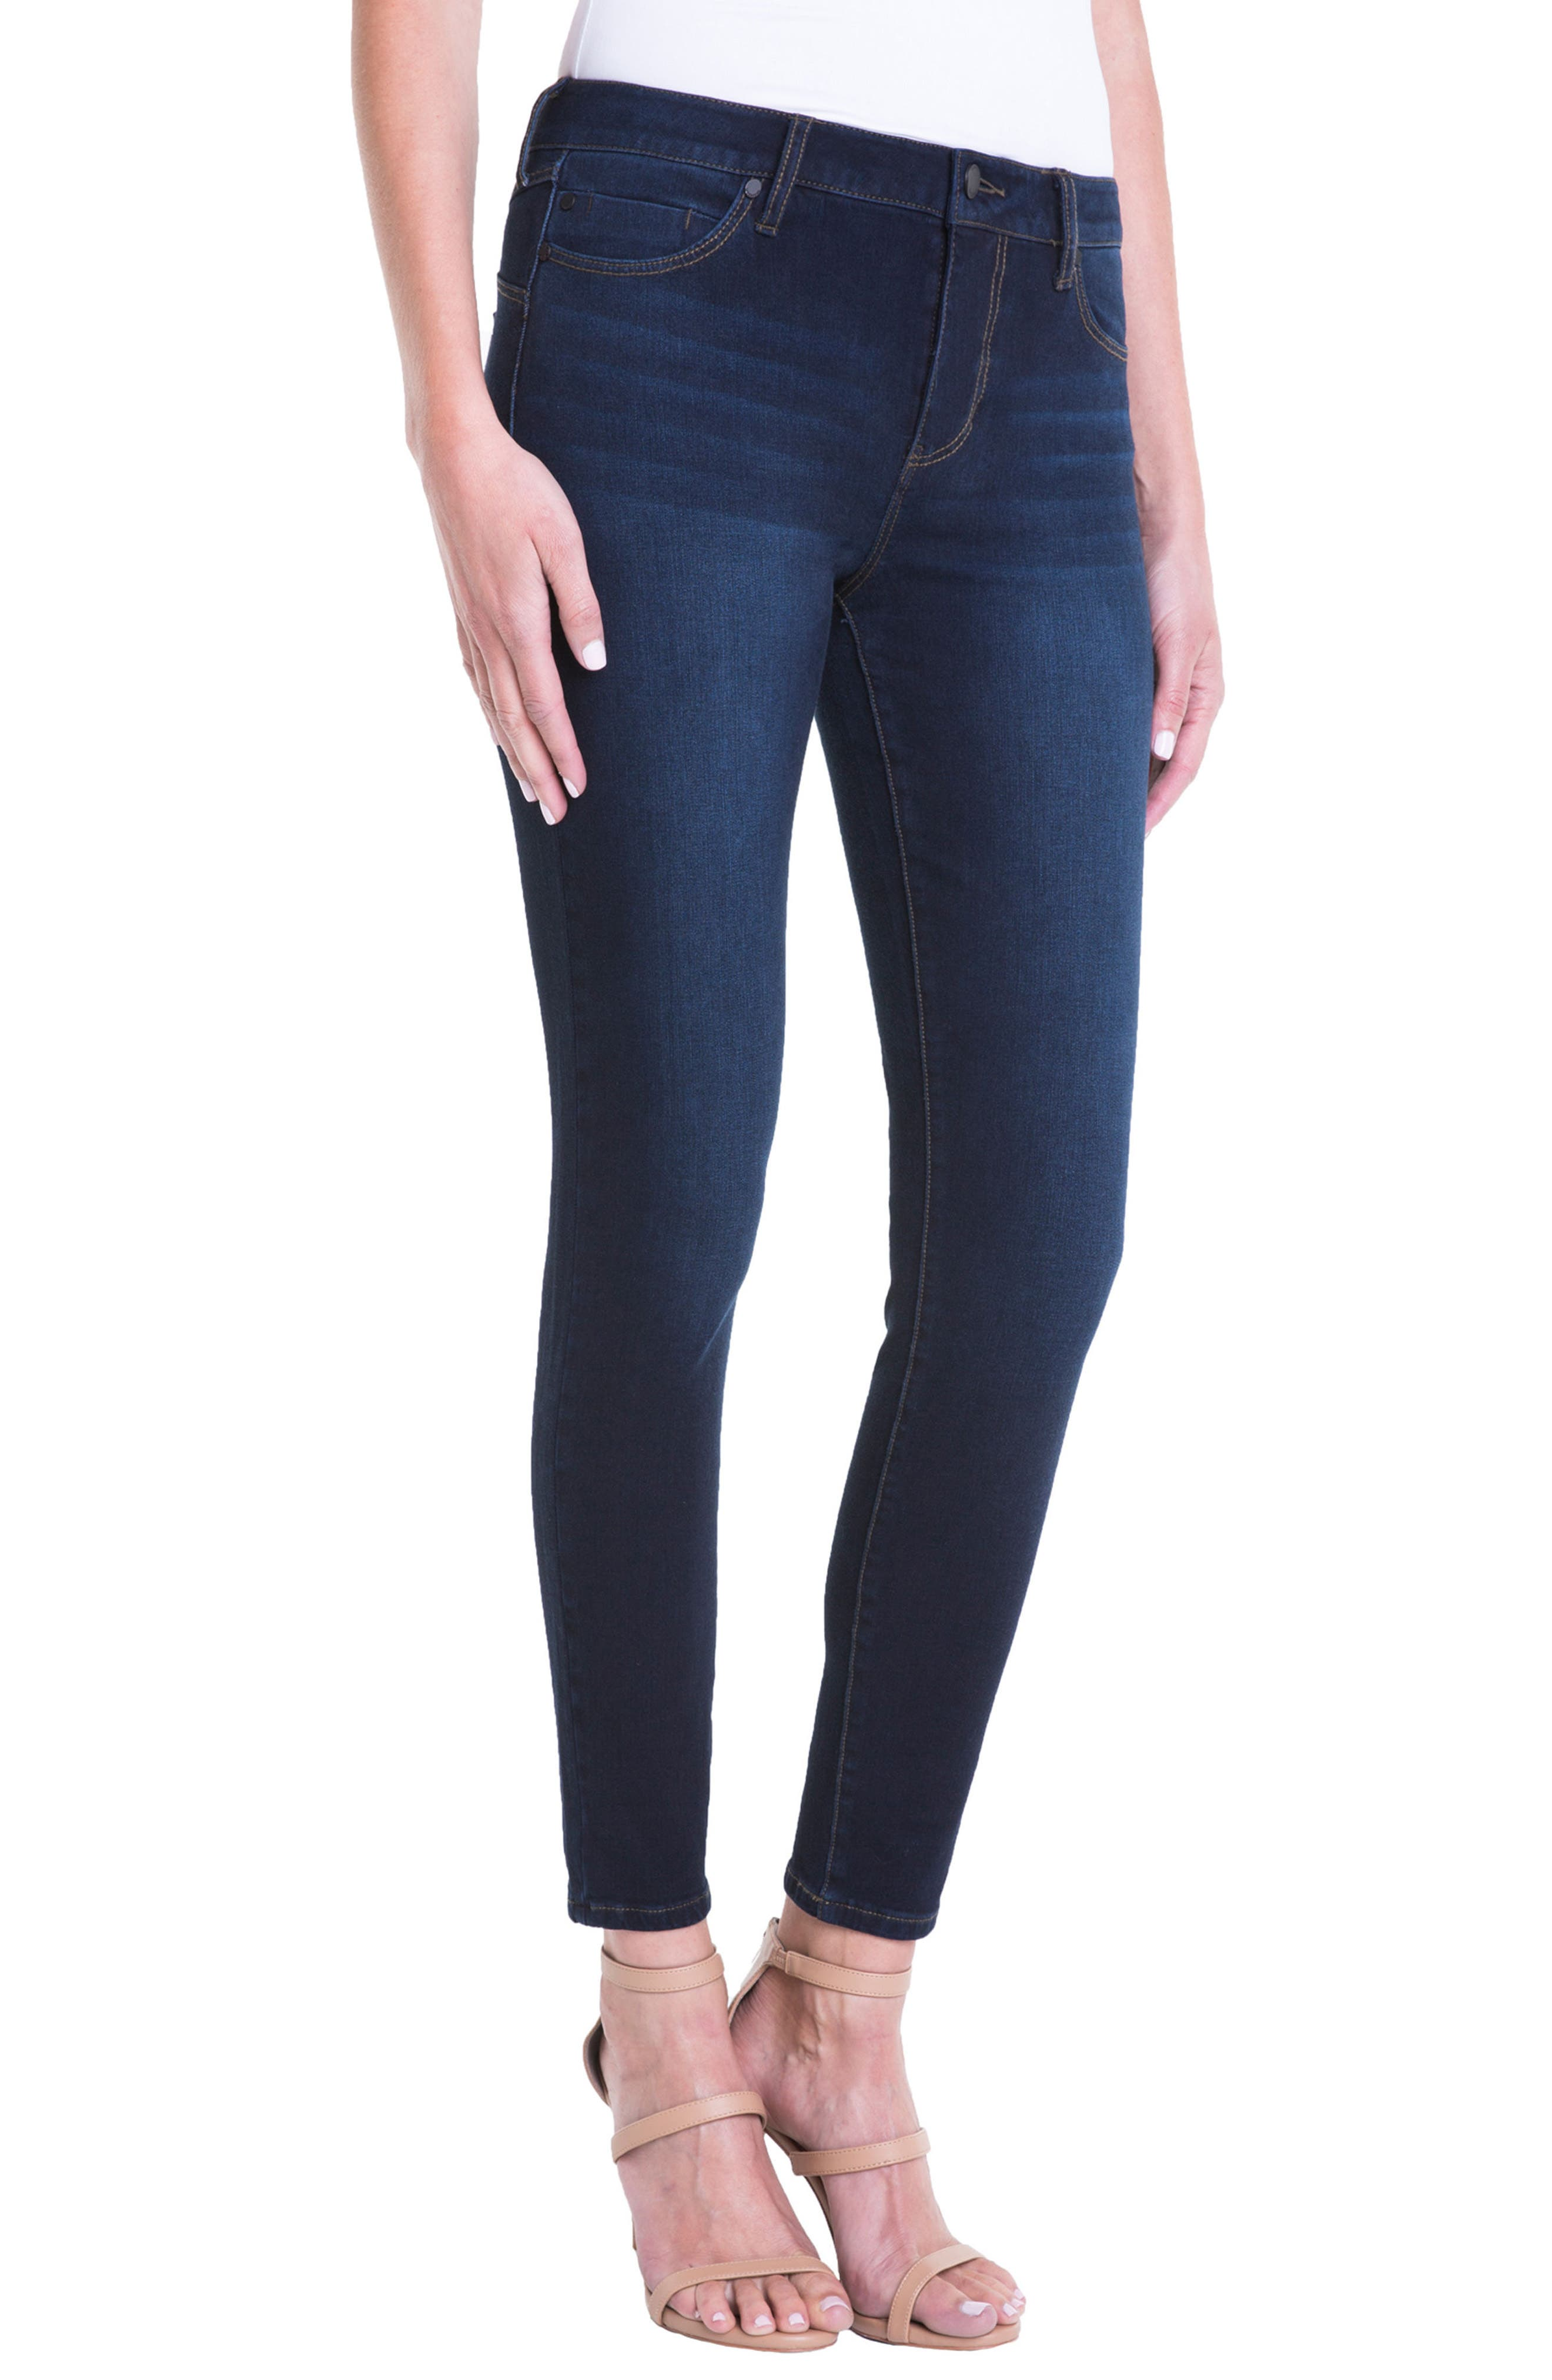 Jeans Company Piper Hugger Lift Sculpt Ankle Skinny Jeans,                             Alternate thumbnail 10, color,